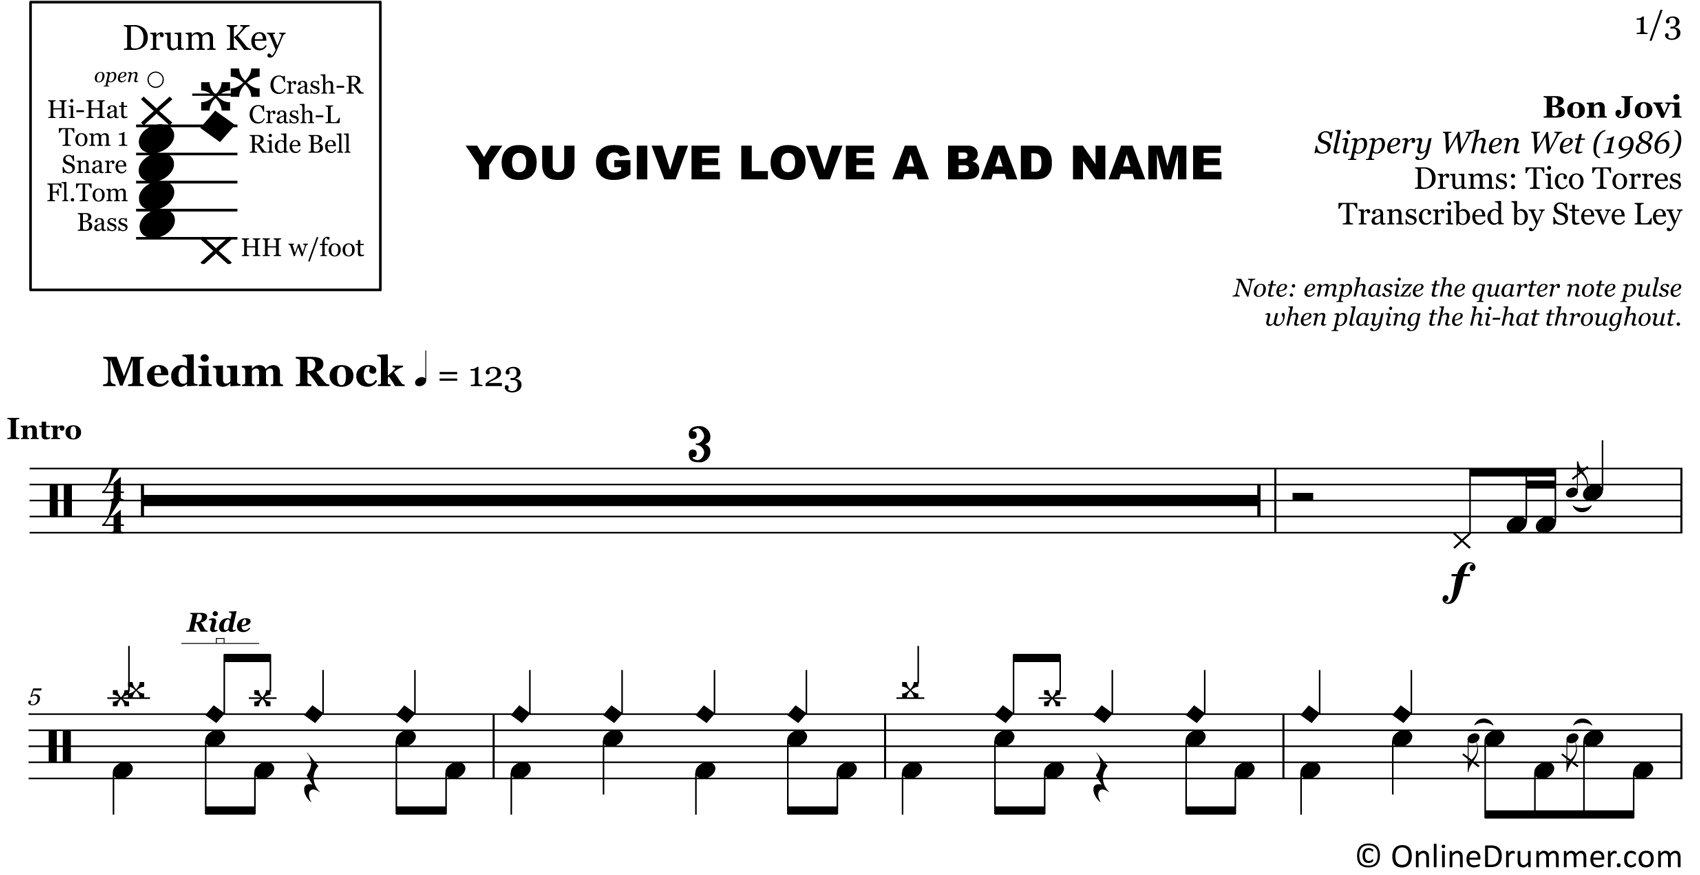 You Give Love a Bad Name - Bon Jovi - Drum Sheet Music